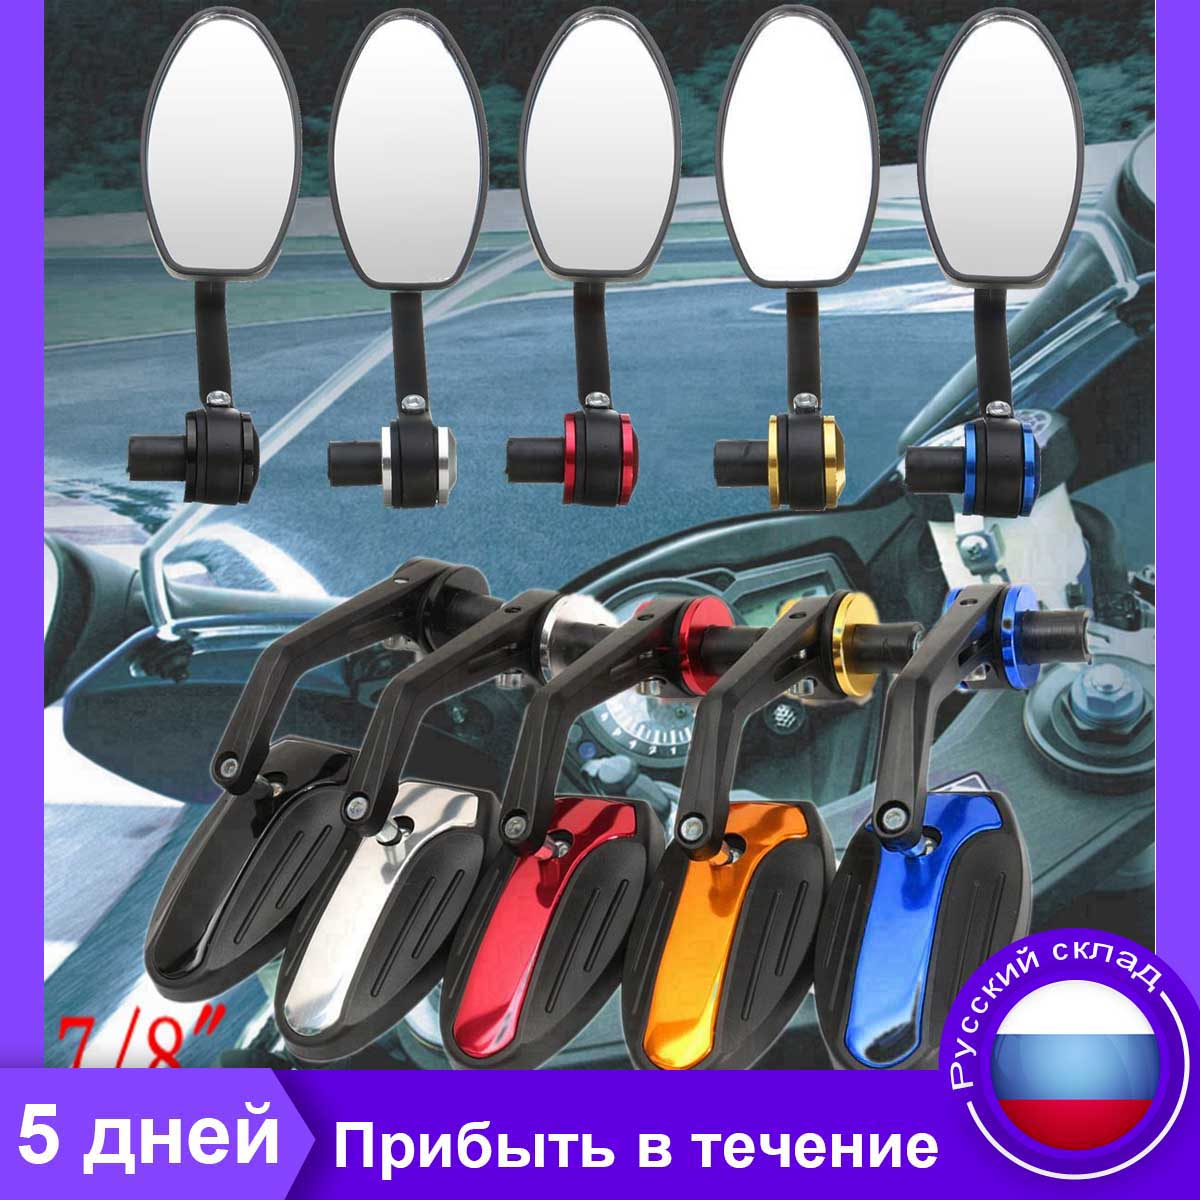 1 Pair Universal 7/8 Motorcycle Aluminum Rear View Side Mirrors Bike Mirror Handle Bar End 360 Degree1 Pair Universal 7/8 Motorcycle Aluminum Rear View Side Mirrors Bike Mirror Handle Bar End 360 Degree